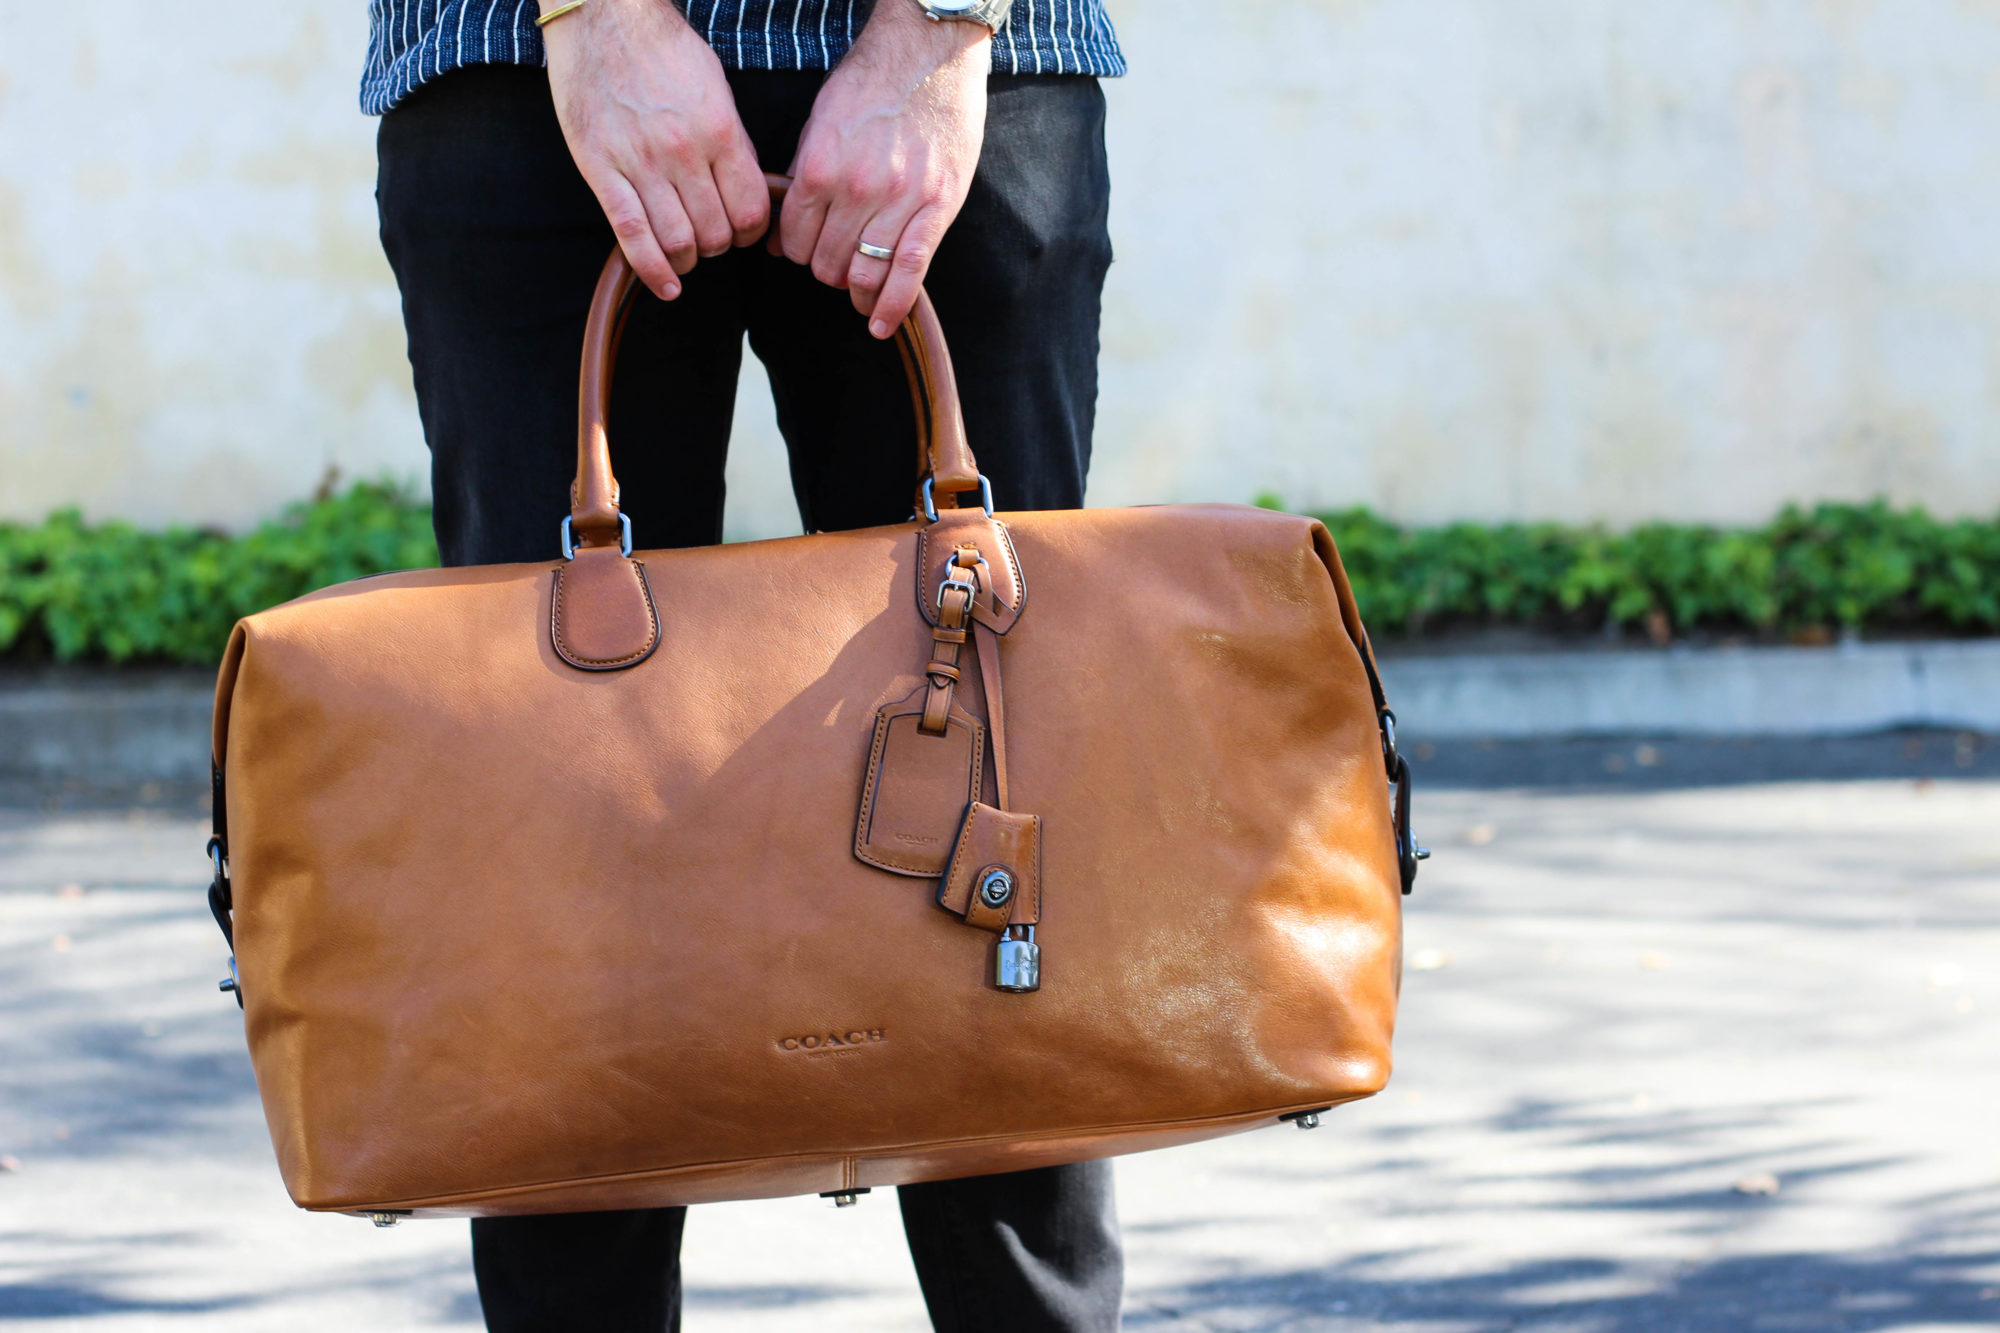 Coach Leather Luggage and Shoes-5